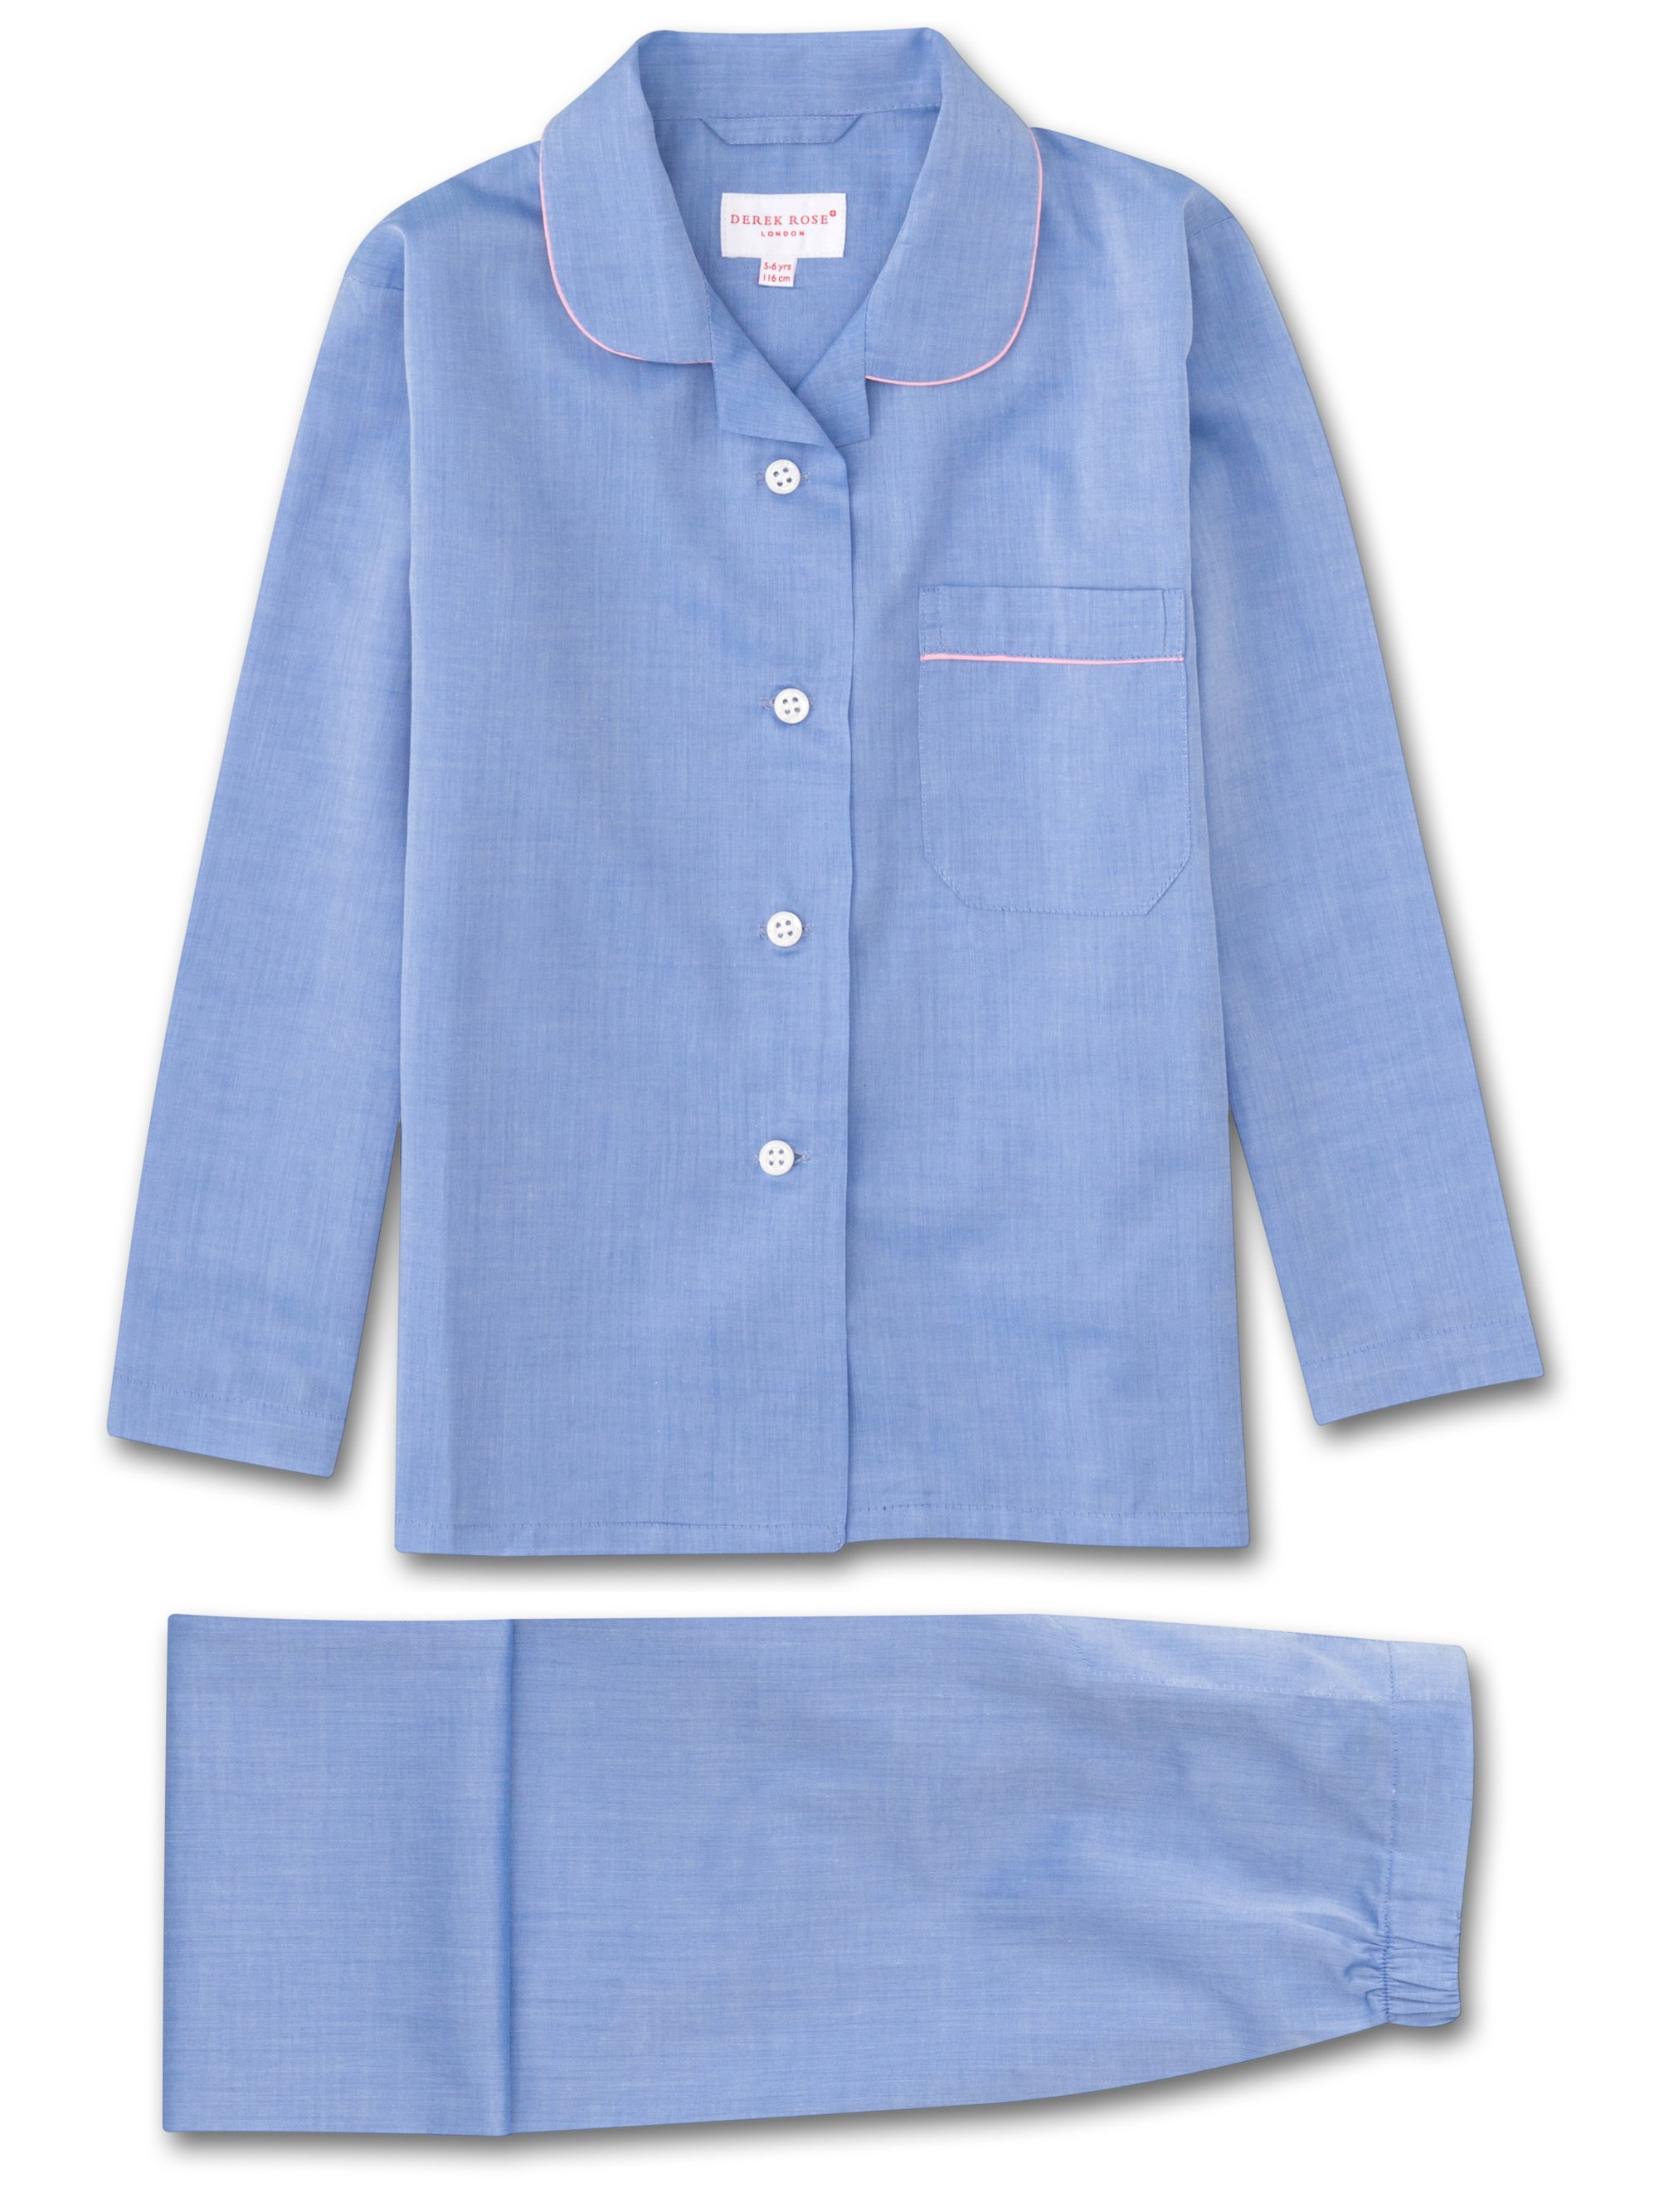 Girls' Pyjamas Amalfi Cotton Batiste Blue